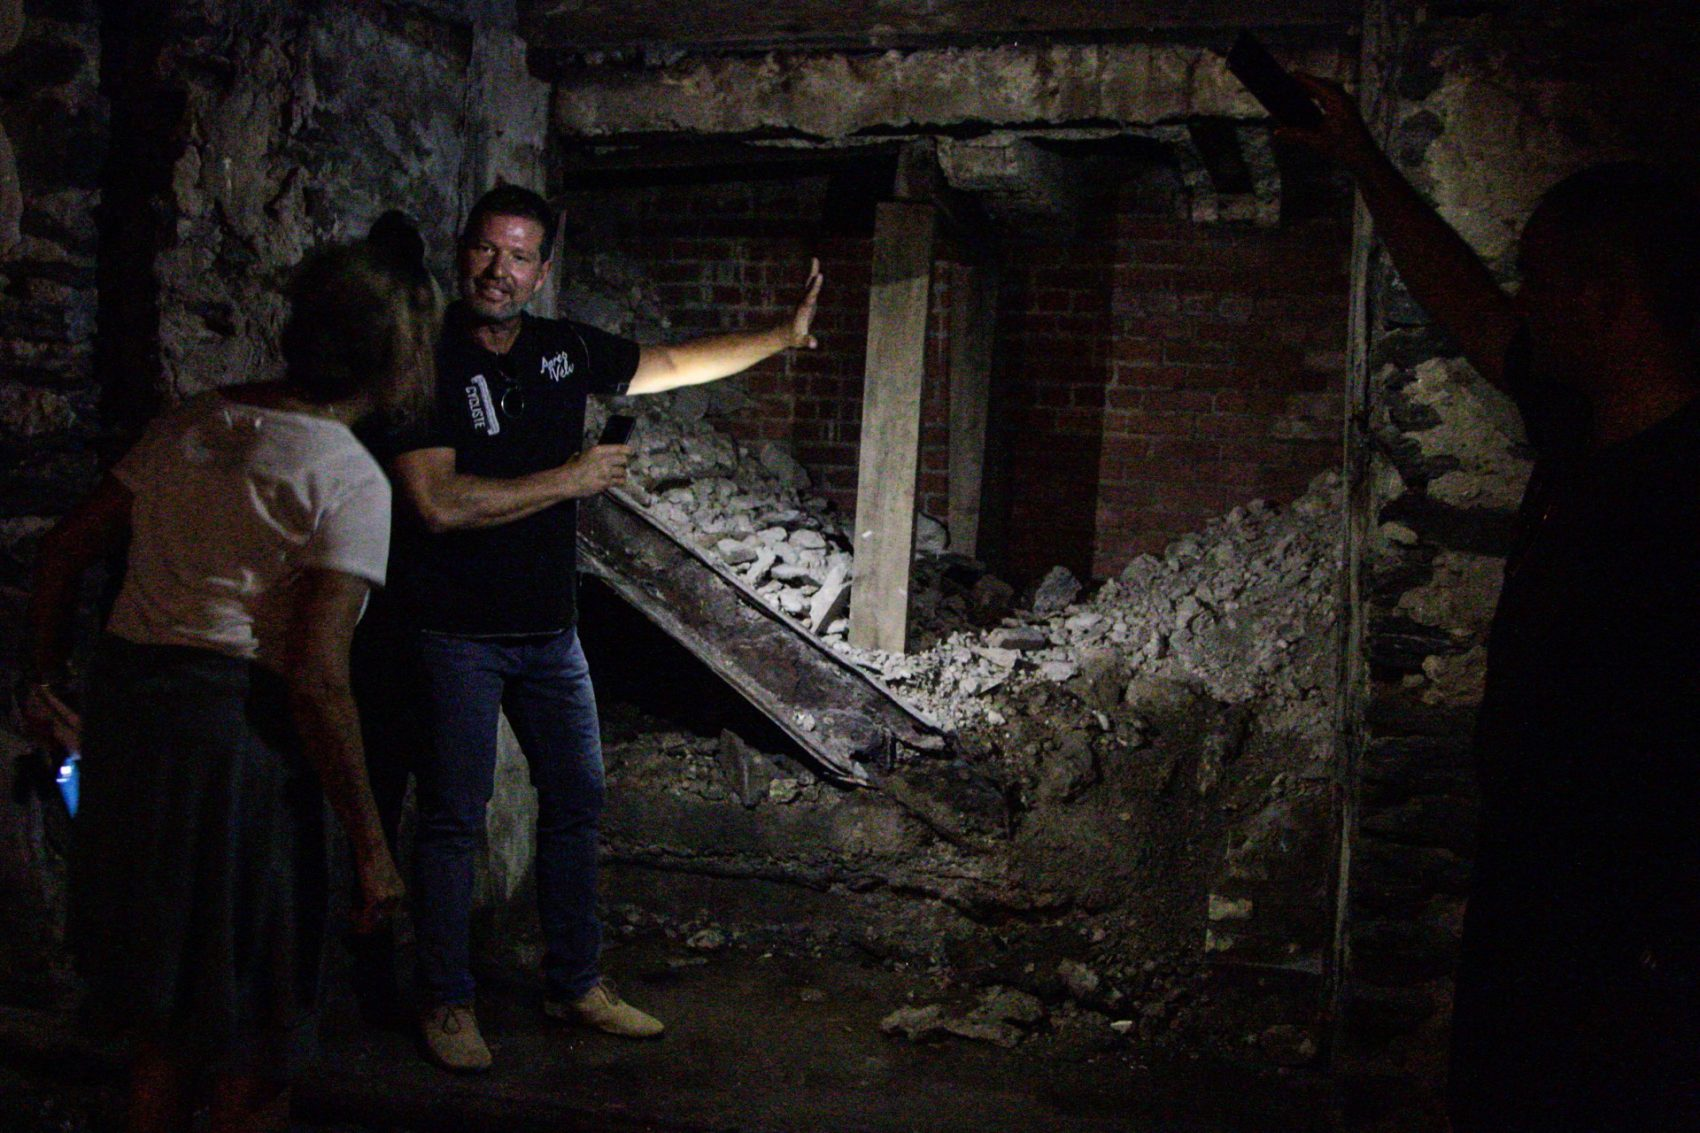 Eric Blumenthal, developer and owner of the Divine Lorraine Hotel building, shows Here & Now's Robin Young the basement level, which includes an old entrance to a Prohibition-era speakeasy. (Dean Russell/Here & Now)